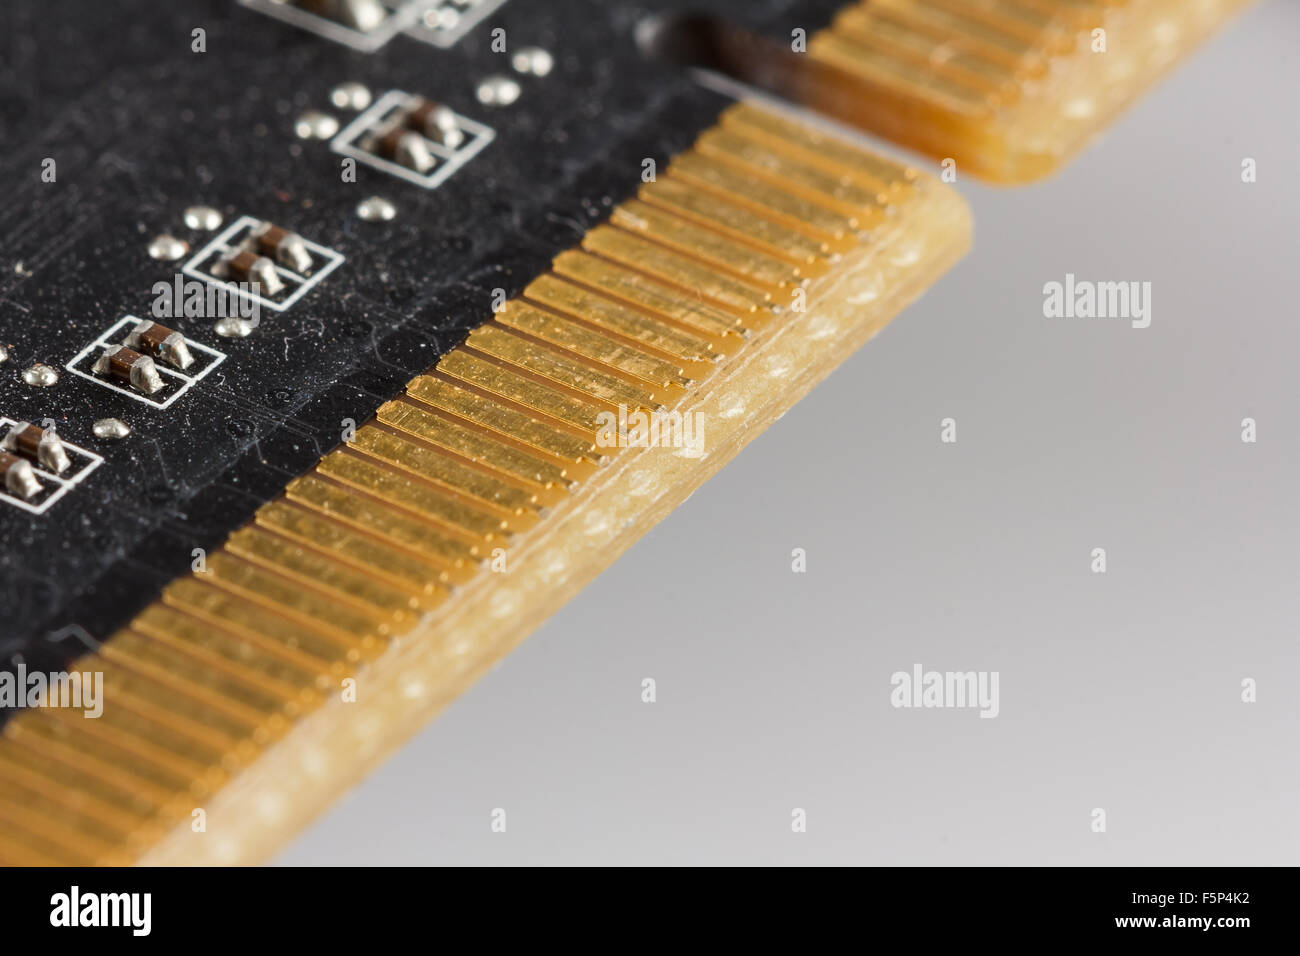 Close-up of a video card for a computer - Stock Image